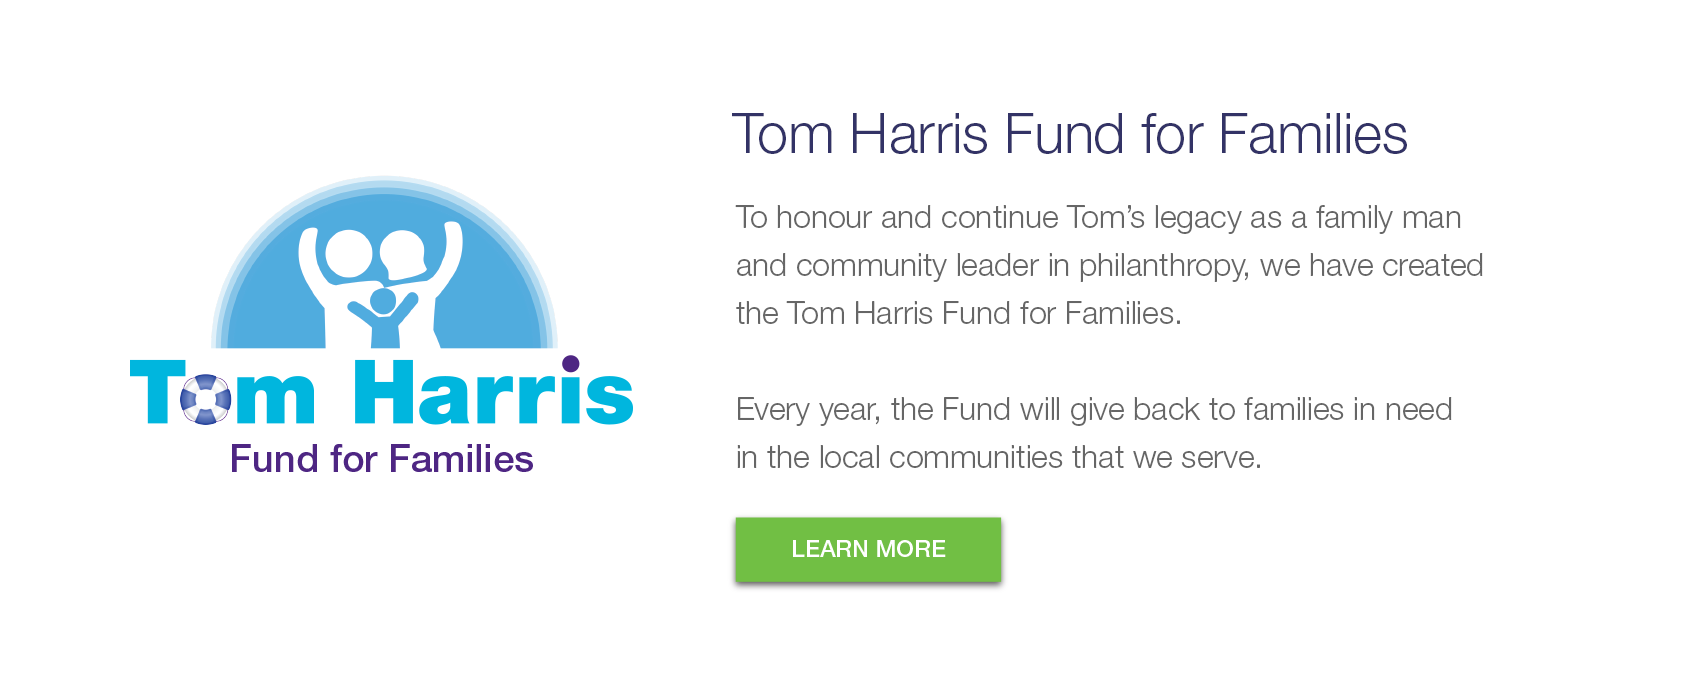 Tom Harris Fund for Families